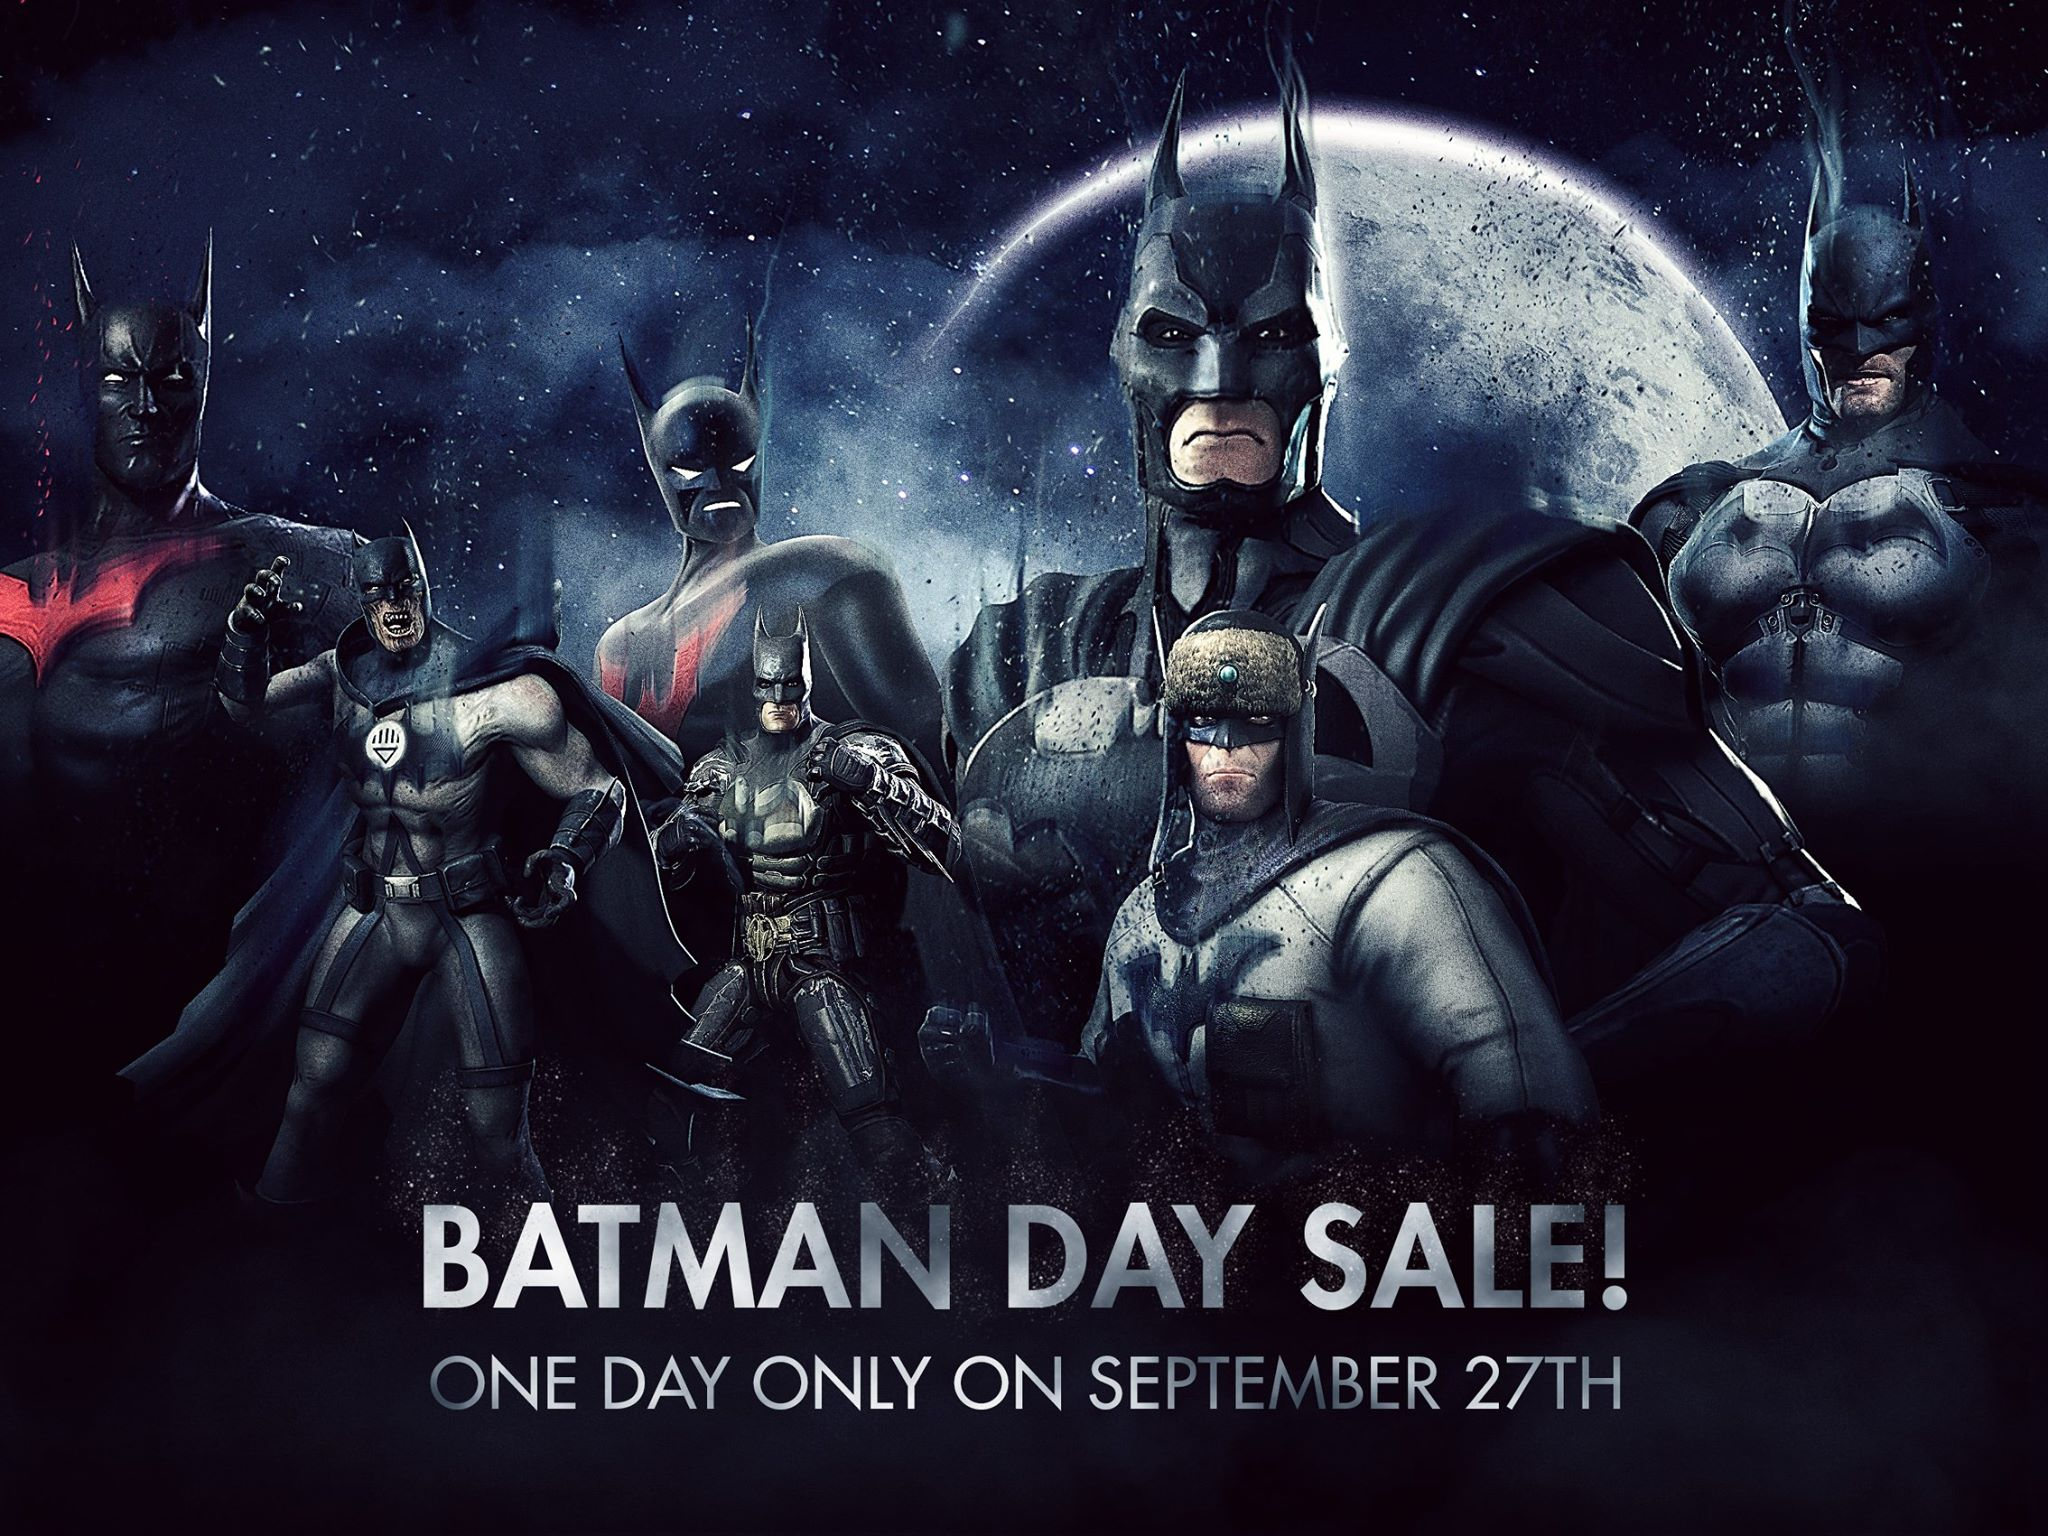 Injustice Starter Pack Characters Injustice Mobile Batman Day Sale